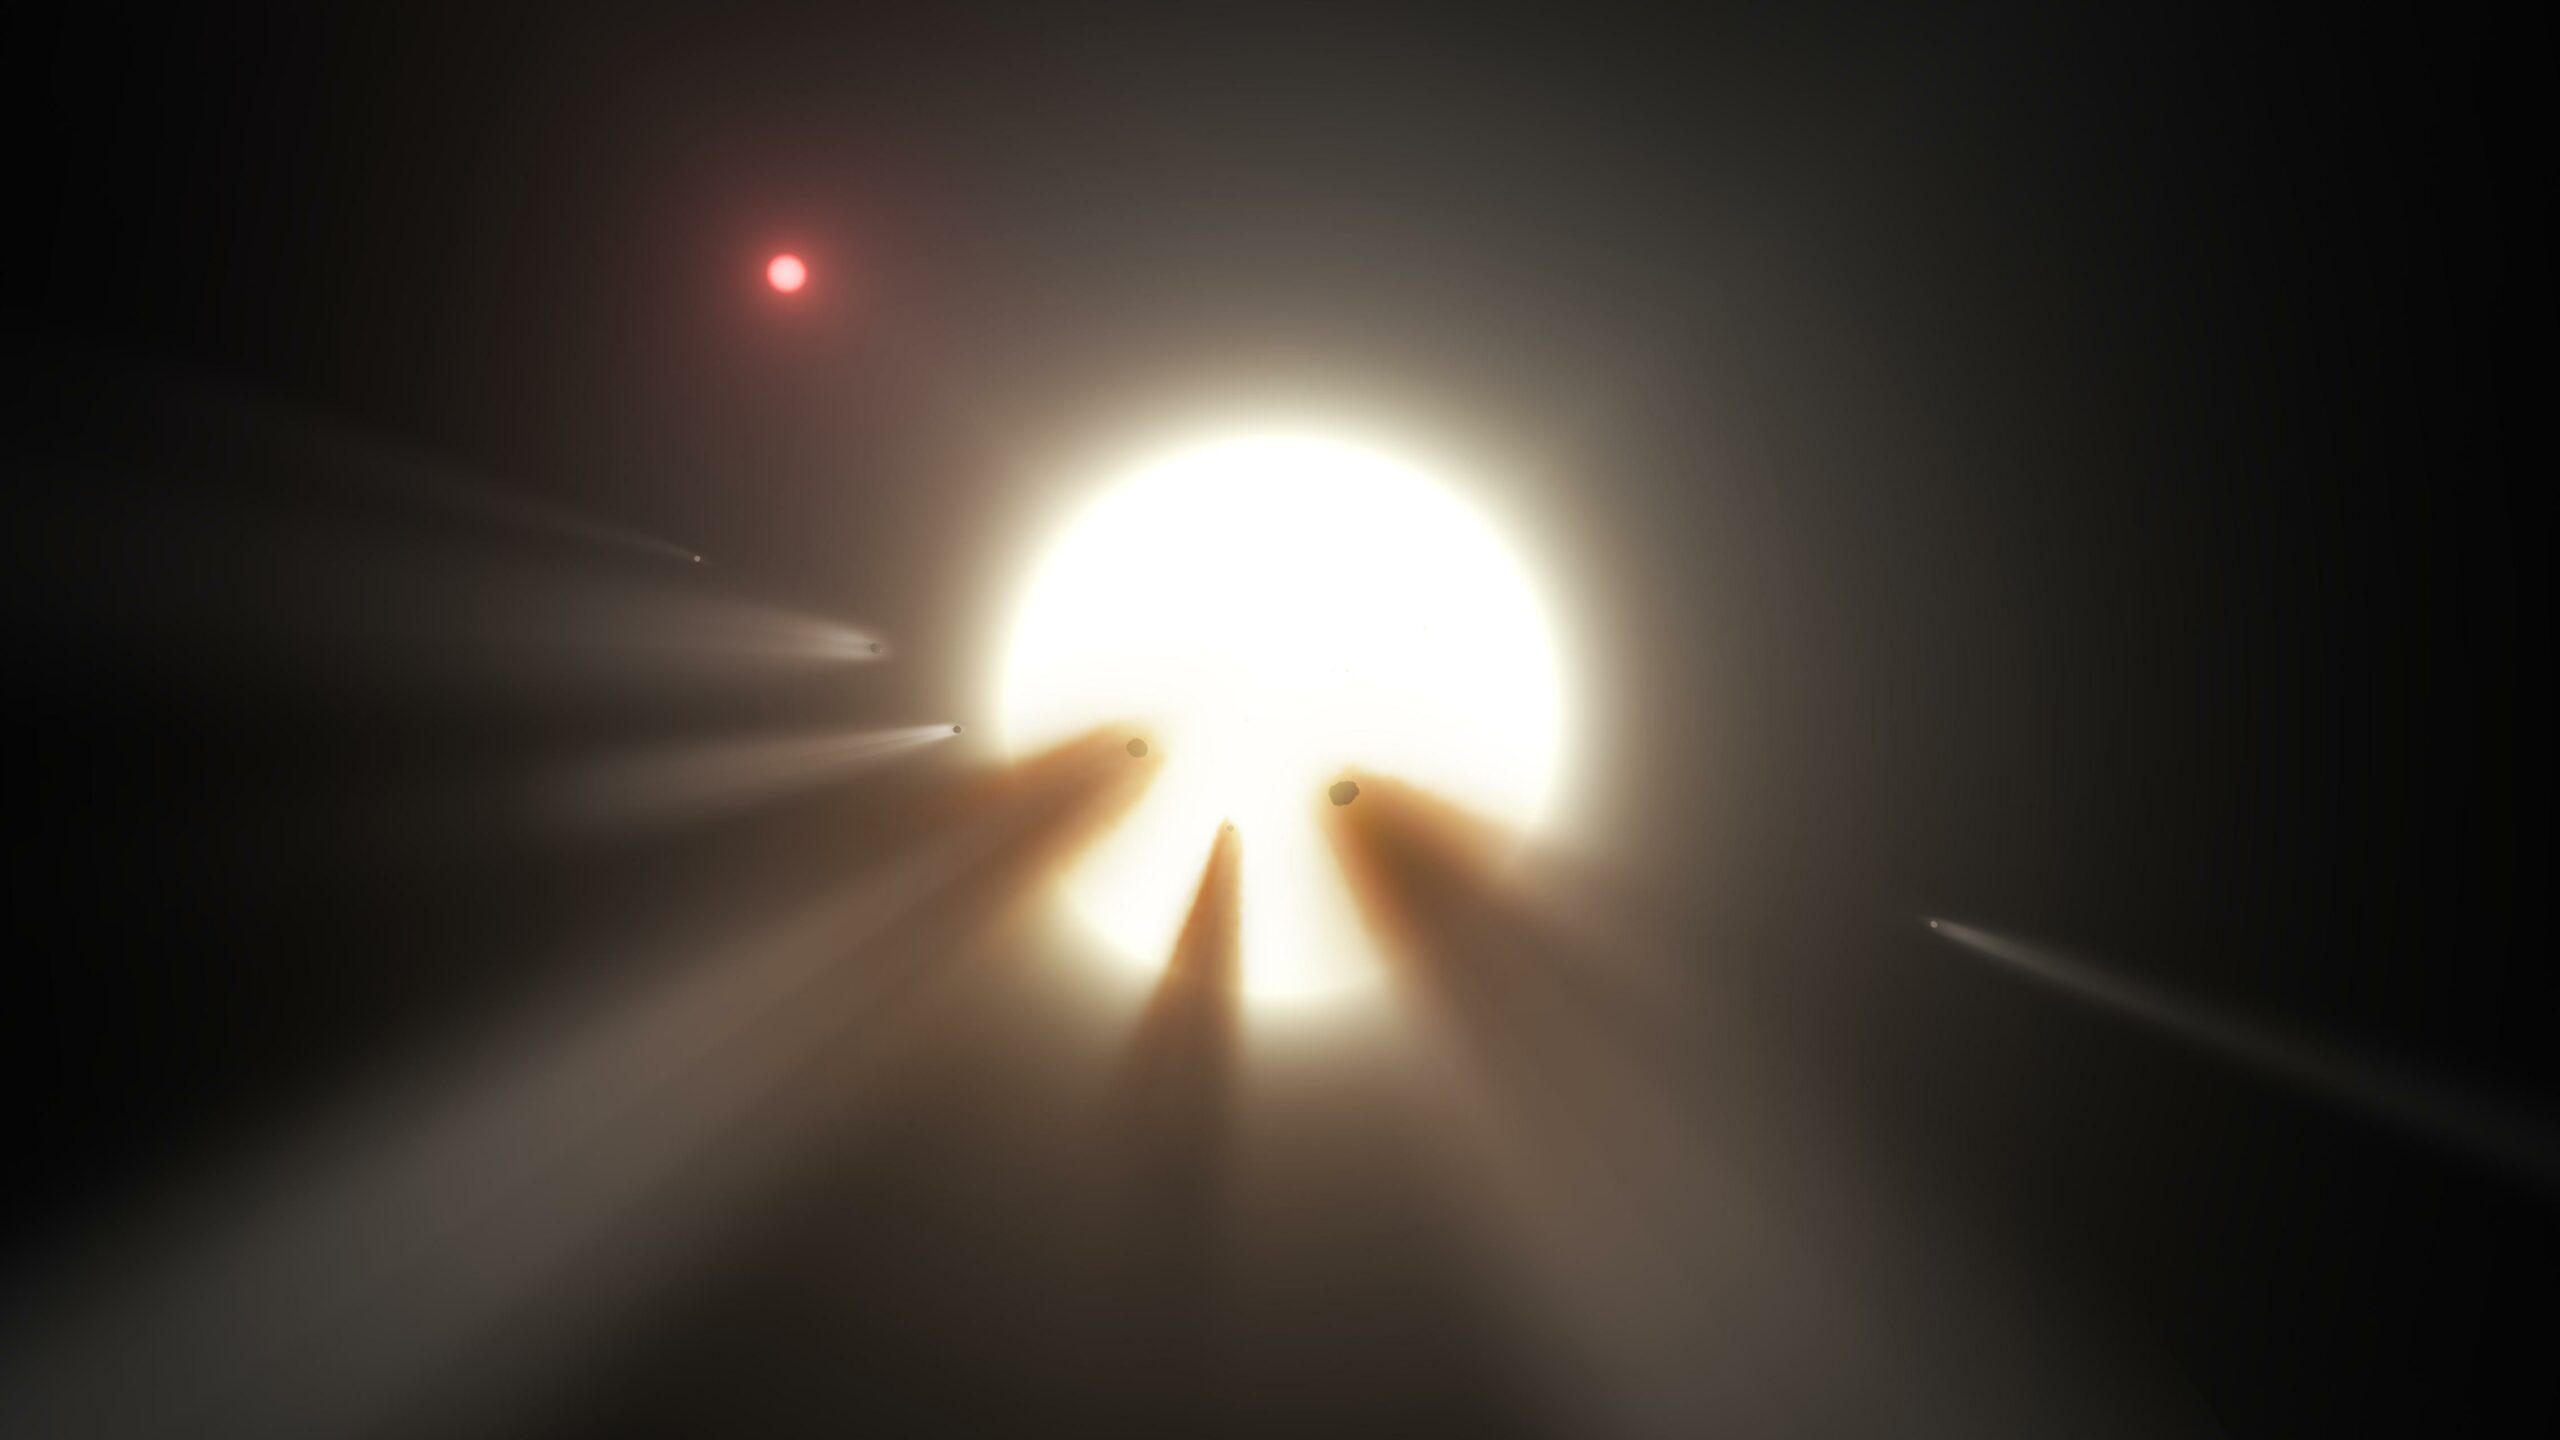 'Alien Megastructure' Star Only Gets More Mysterious